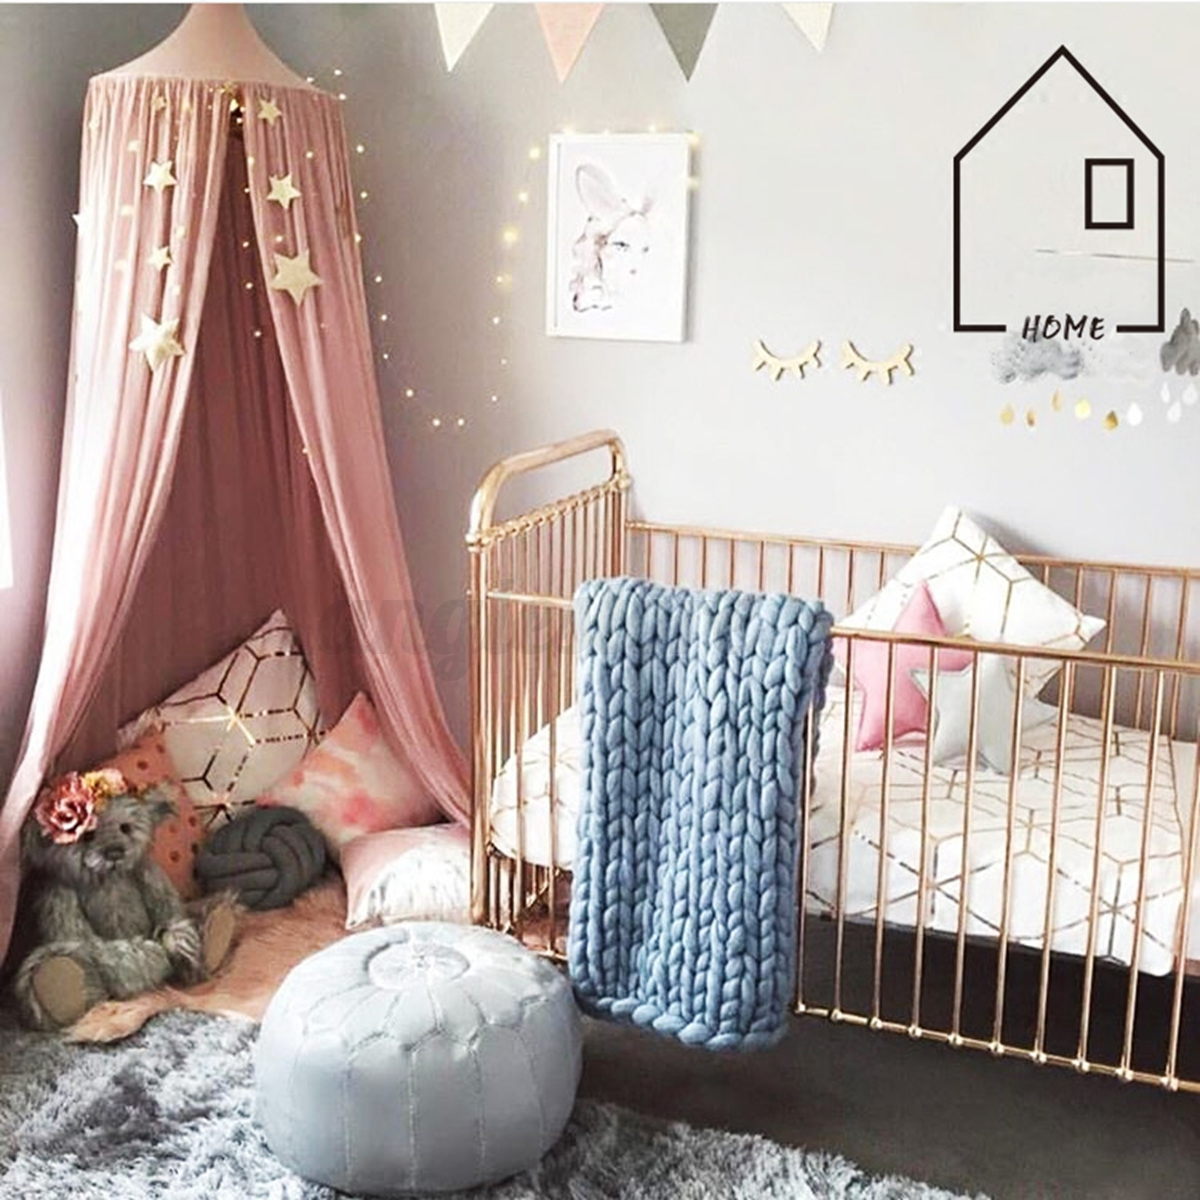 Baby/Kids Bed Canopy Netting Bedcover Mosquito Net Curtain Bedding Round Dome-US & Baby/Kids Bed Canopy Netting Bedcover Mosquito Net Curtain Bedding ...